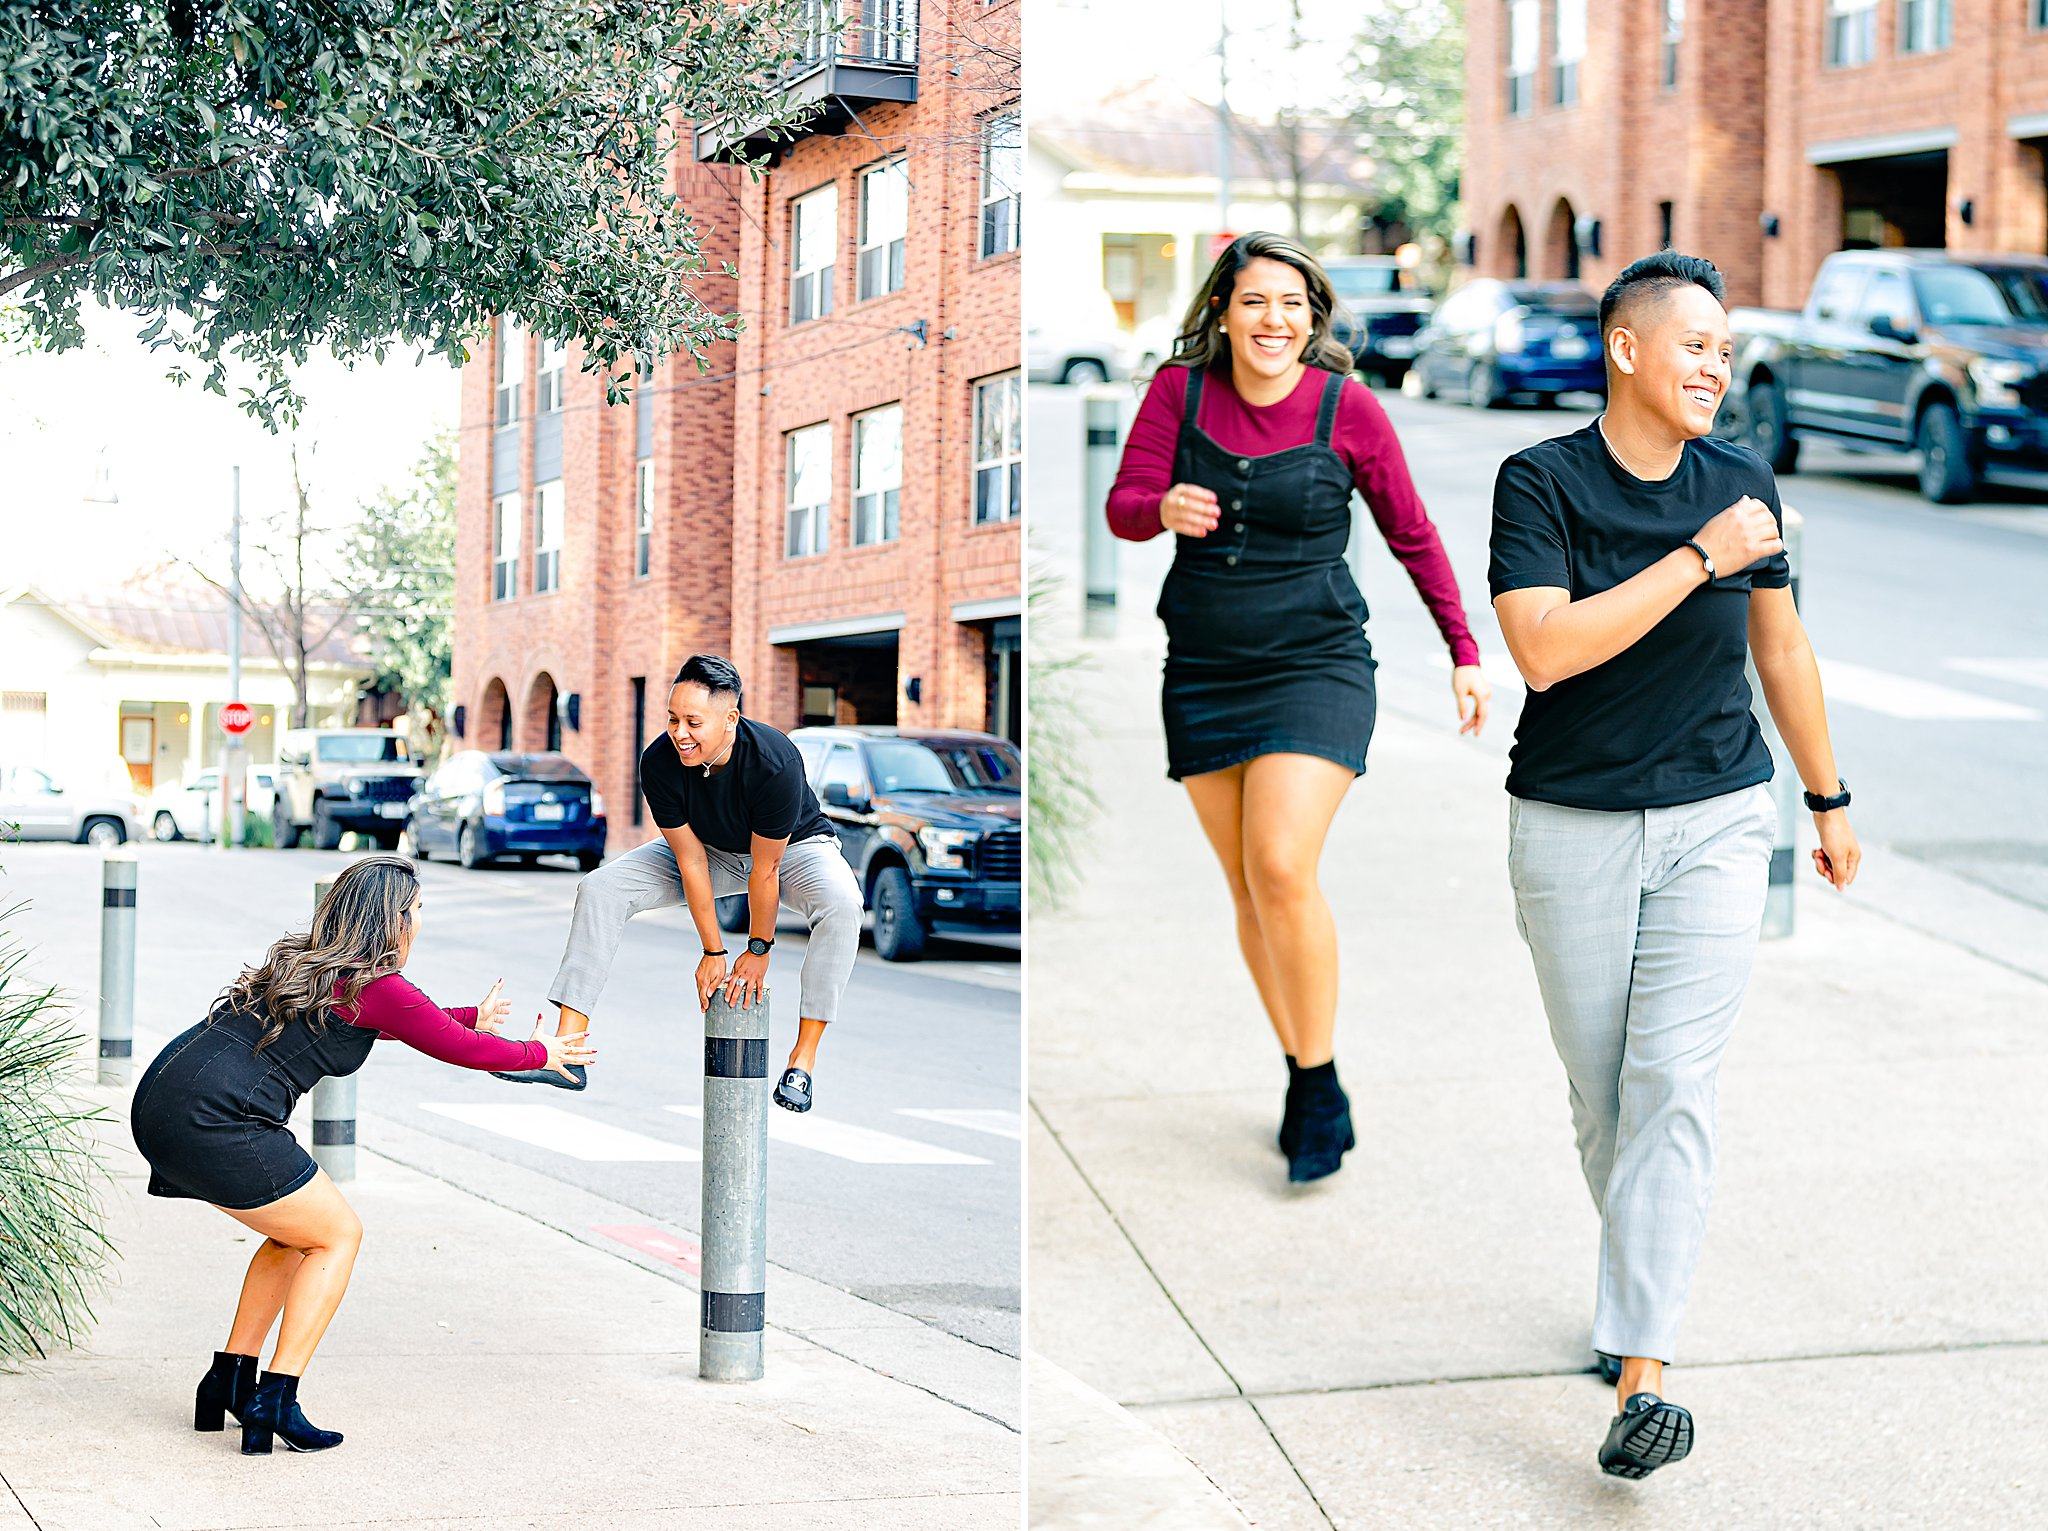 Carly-Barton-Photography-Texas-Engagement-Photographer-The-Historic-Pearl-San-Antonio_0010.jpg